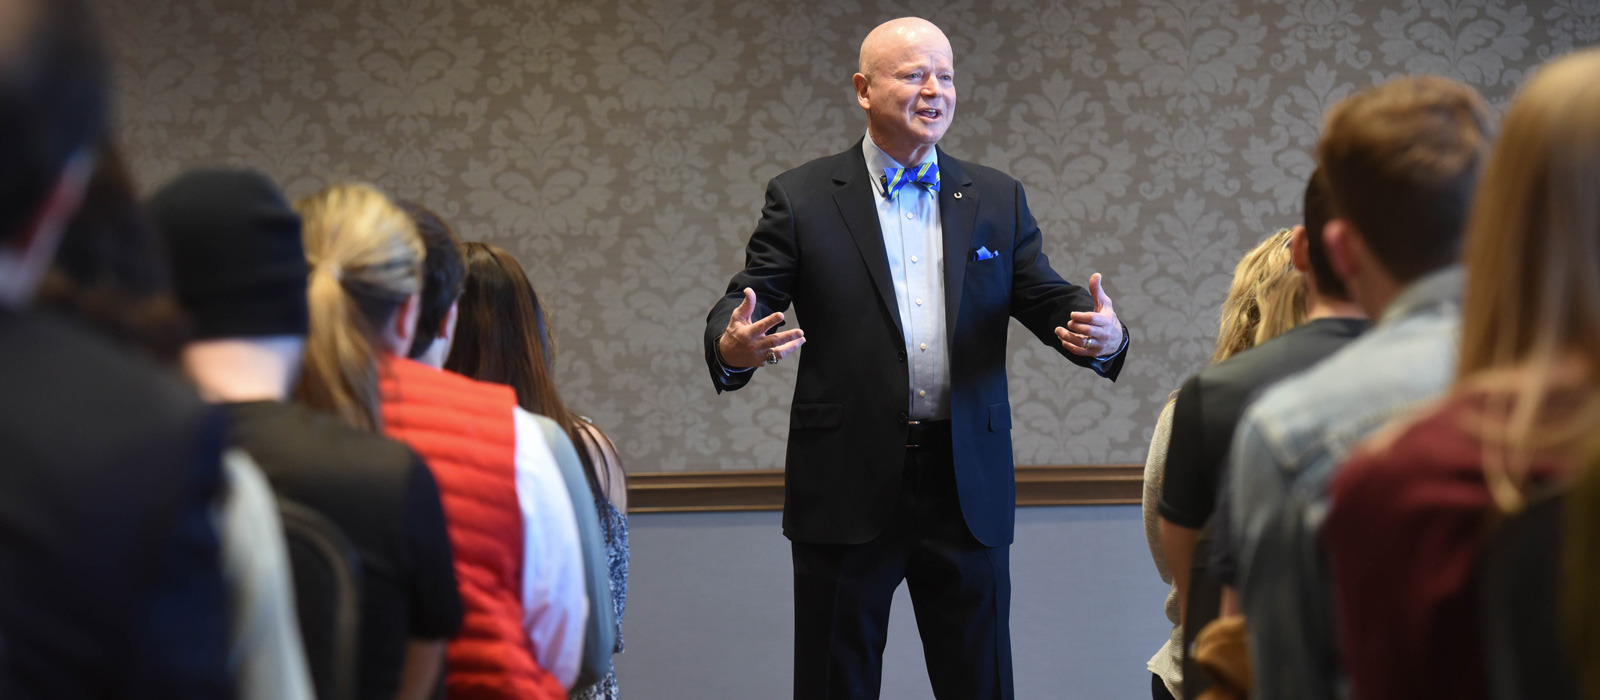 Former Dollar General CEO Discusses Business Ethics, Faith in Corporations with Students